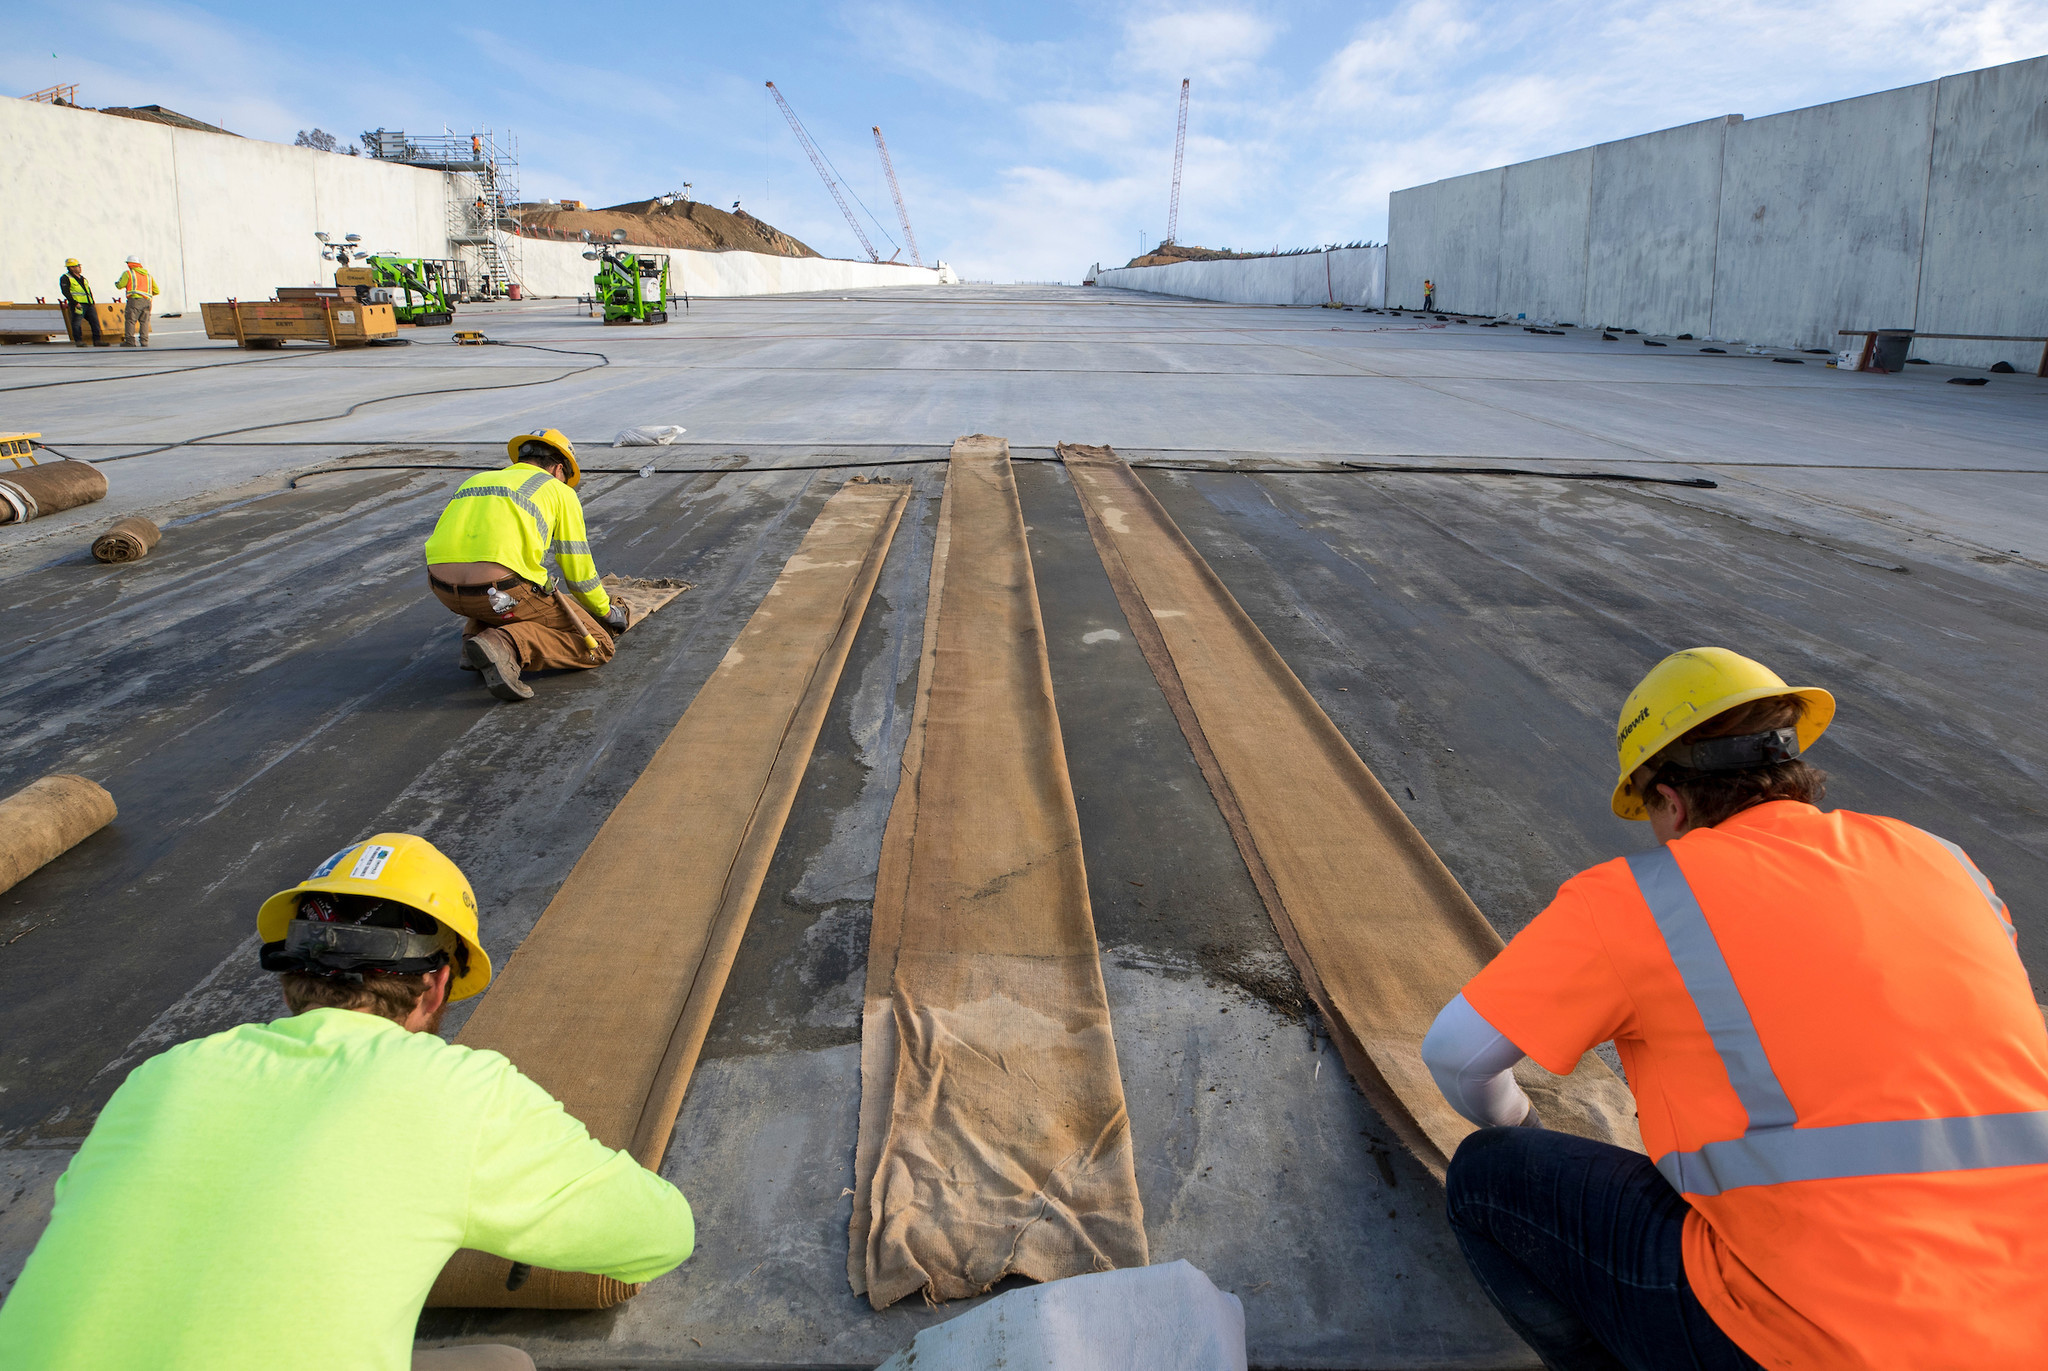 Workers roll up blankets used in the curing process for the structural concrete panels on the lower chute at the Lake Oroville flood control spillway on Monday.